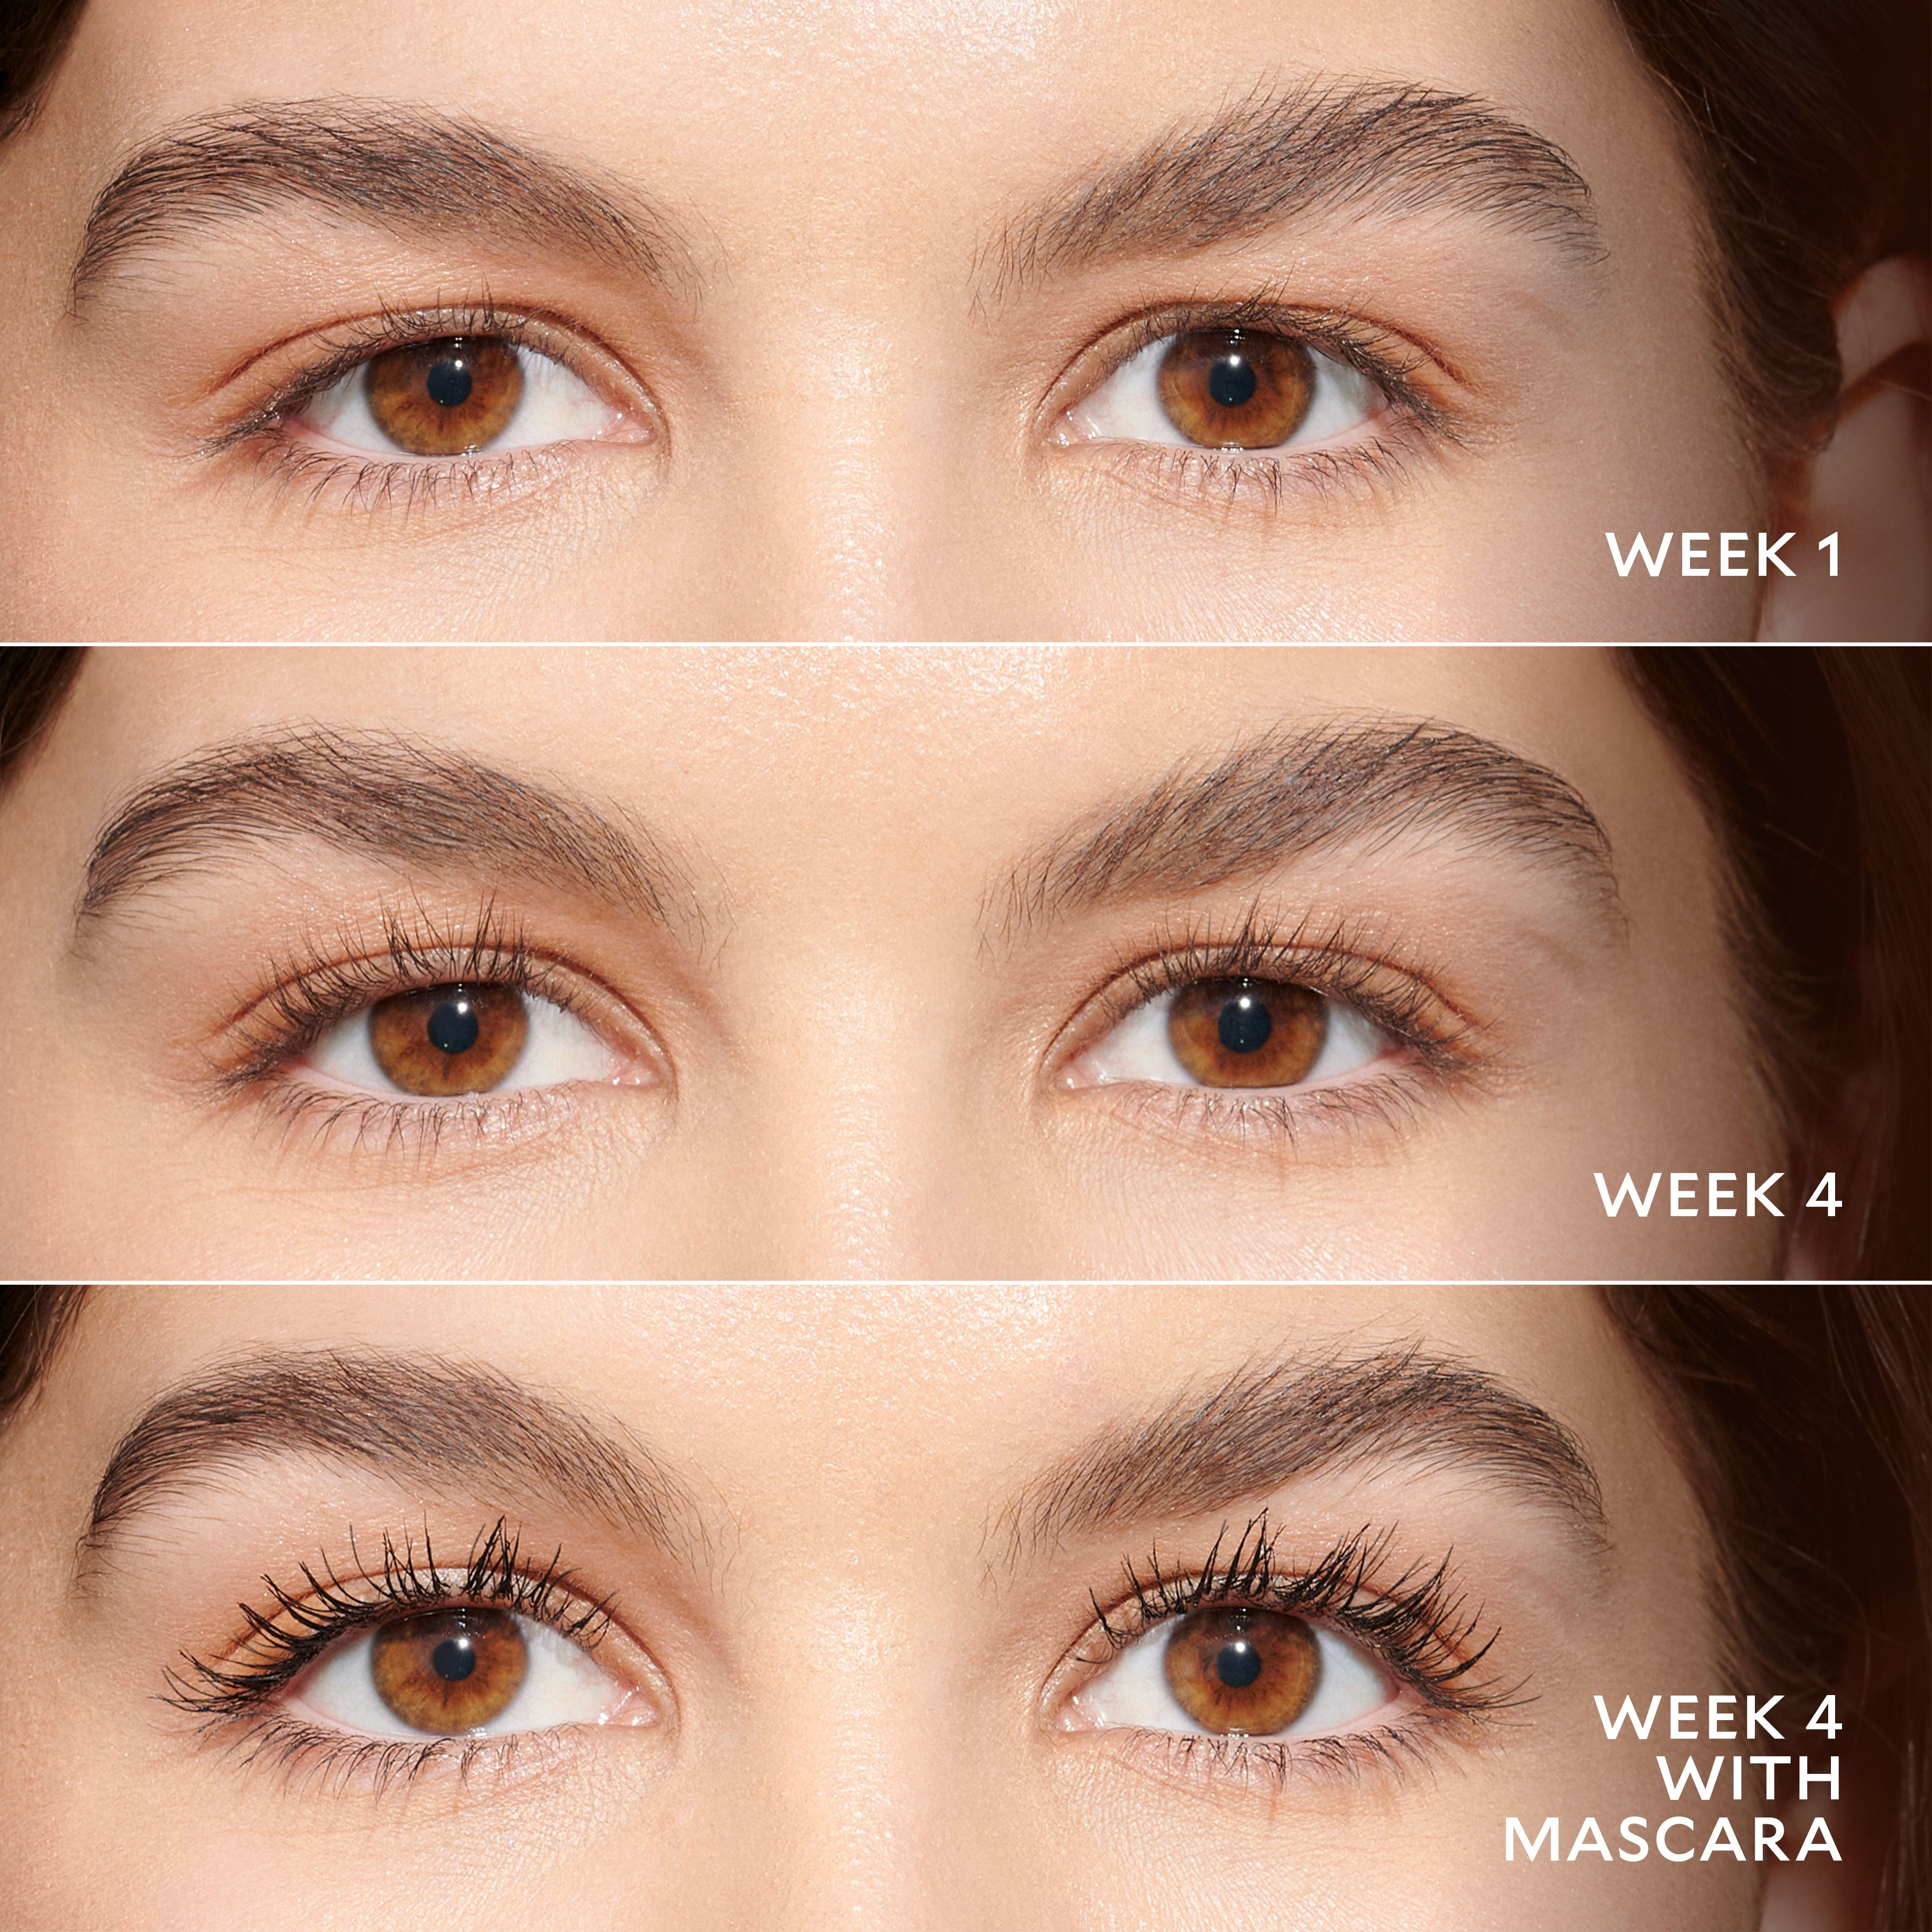 results of using mascara in 4 weeks